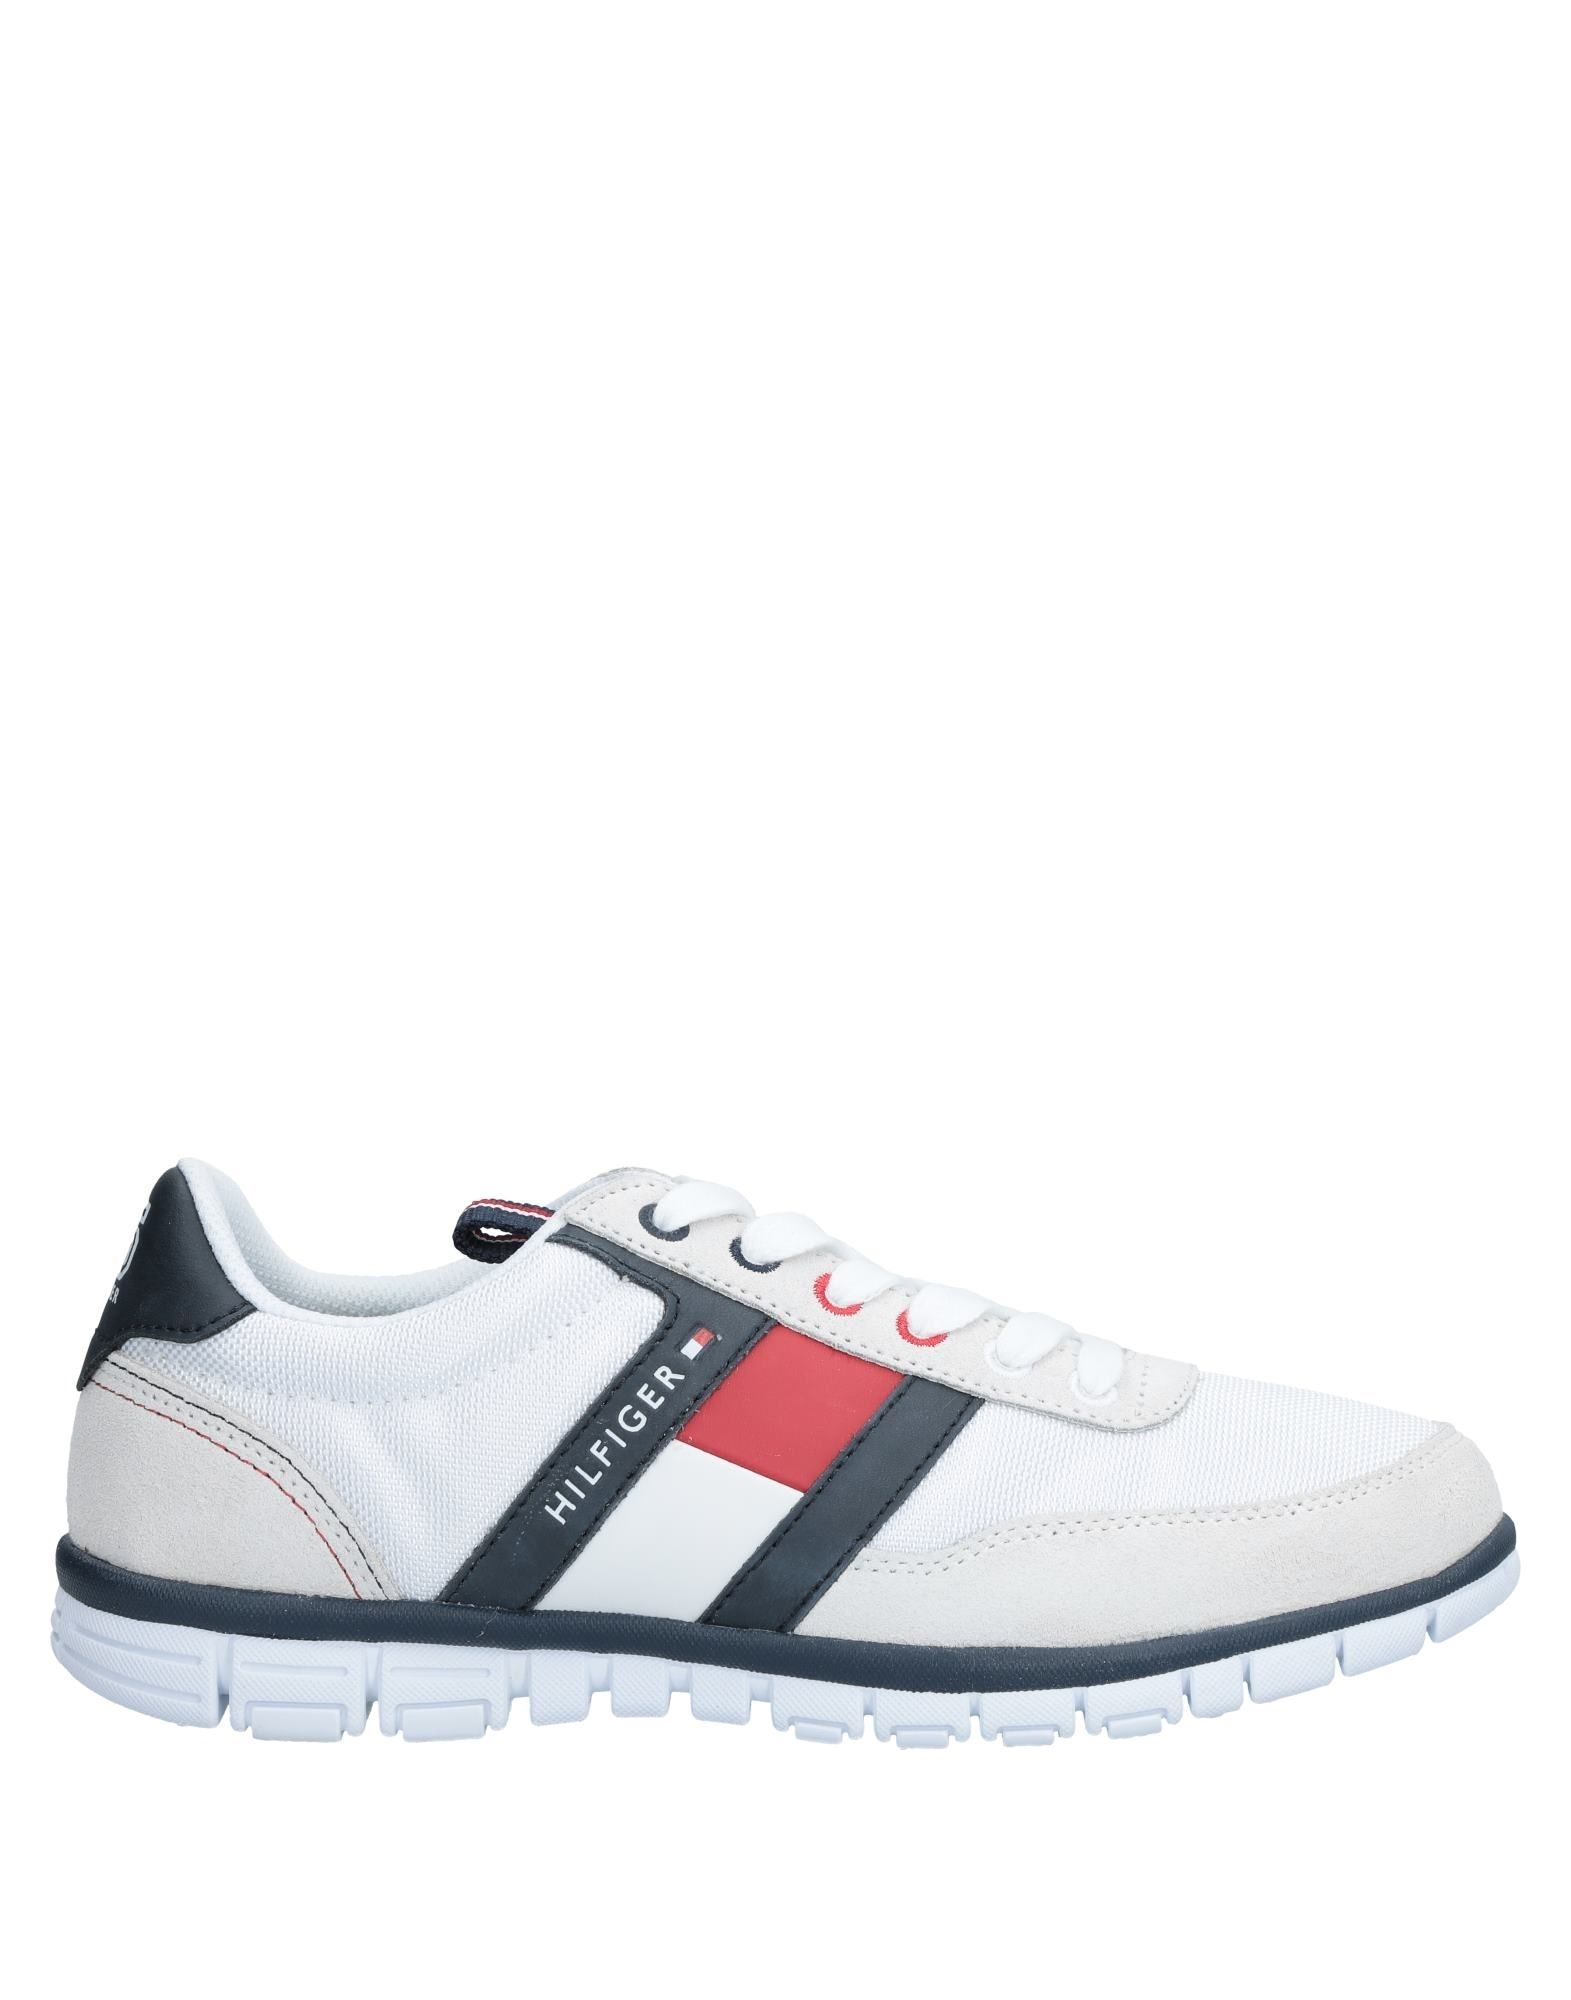 Sneakers Tommy Hilfiger Uomo - 11463184QT